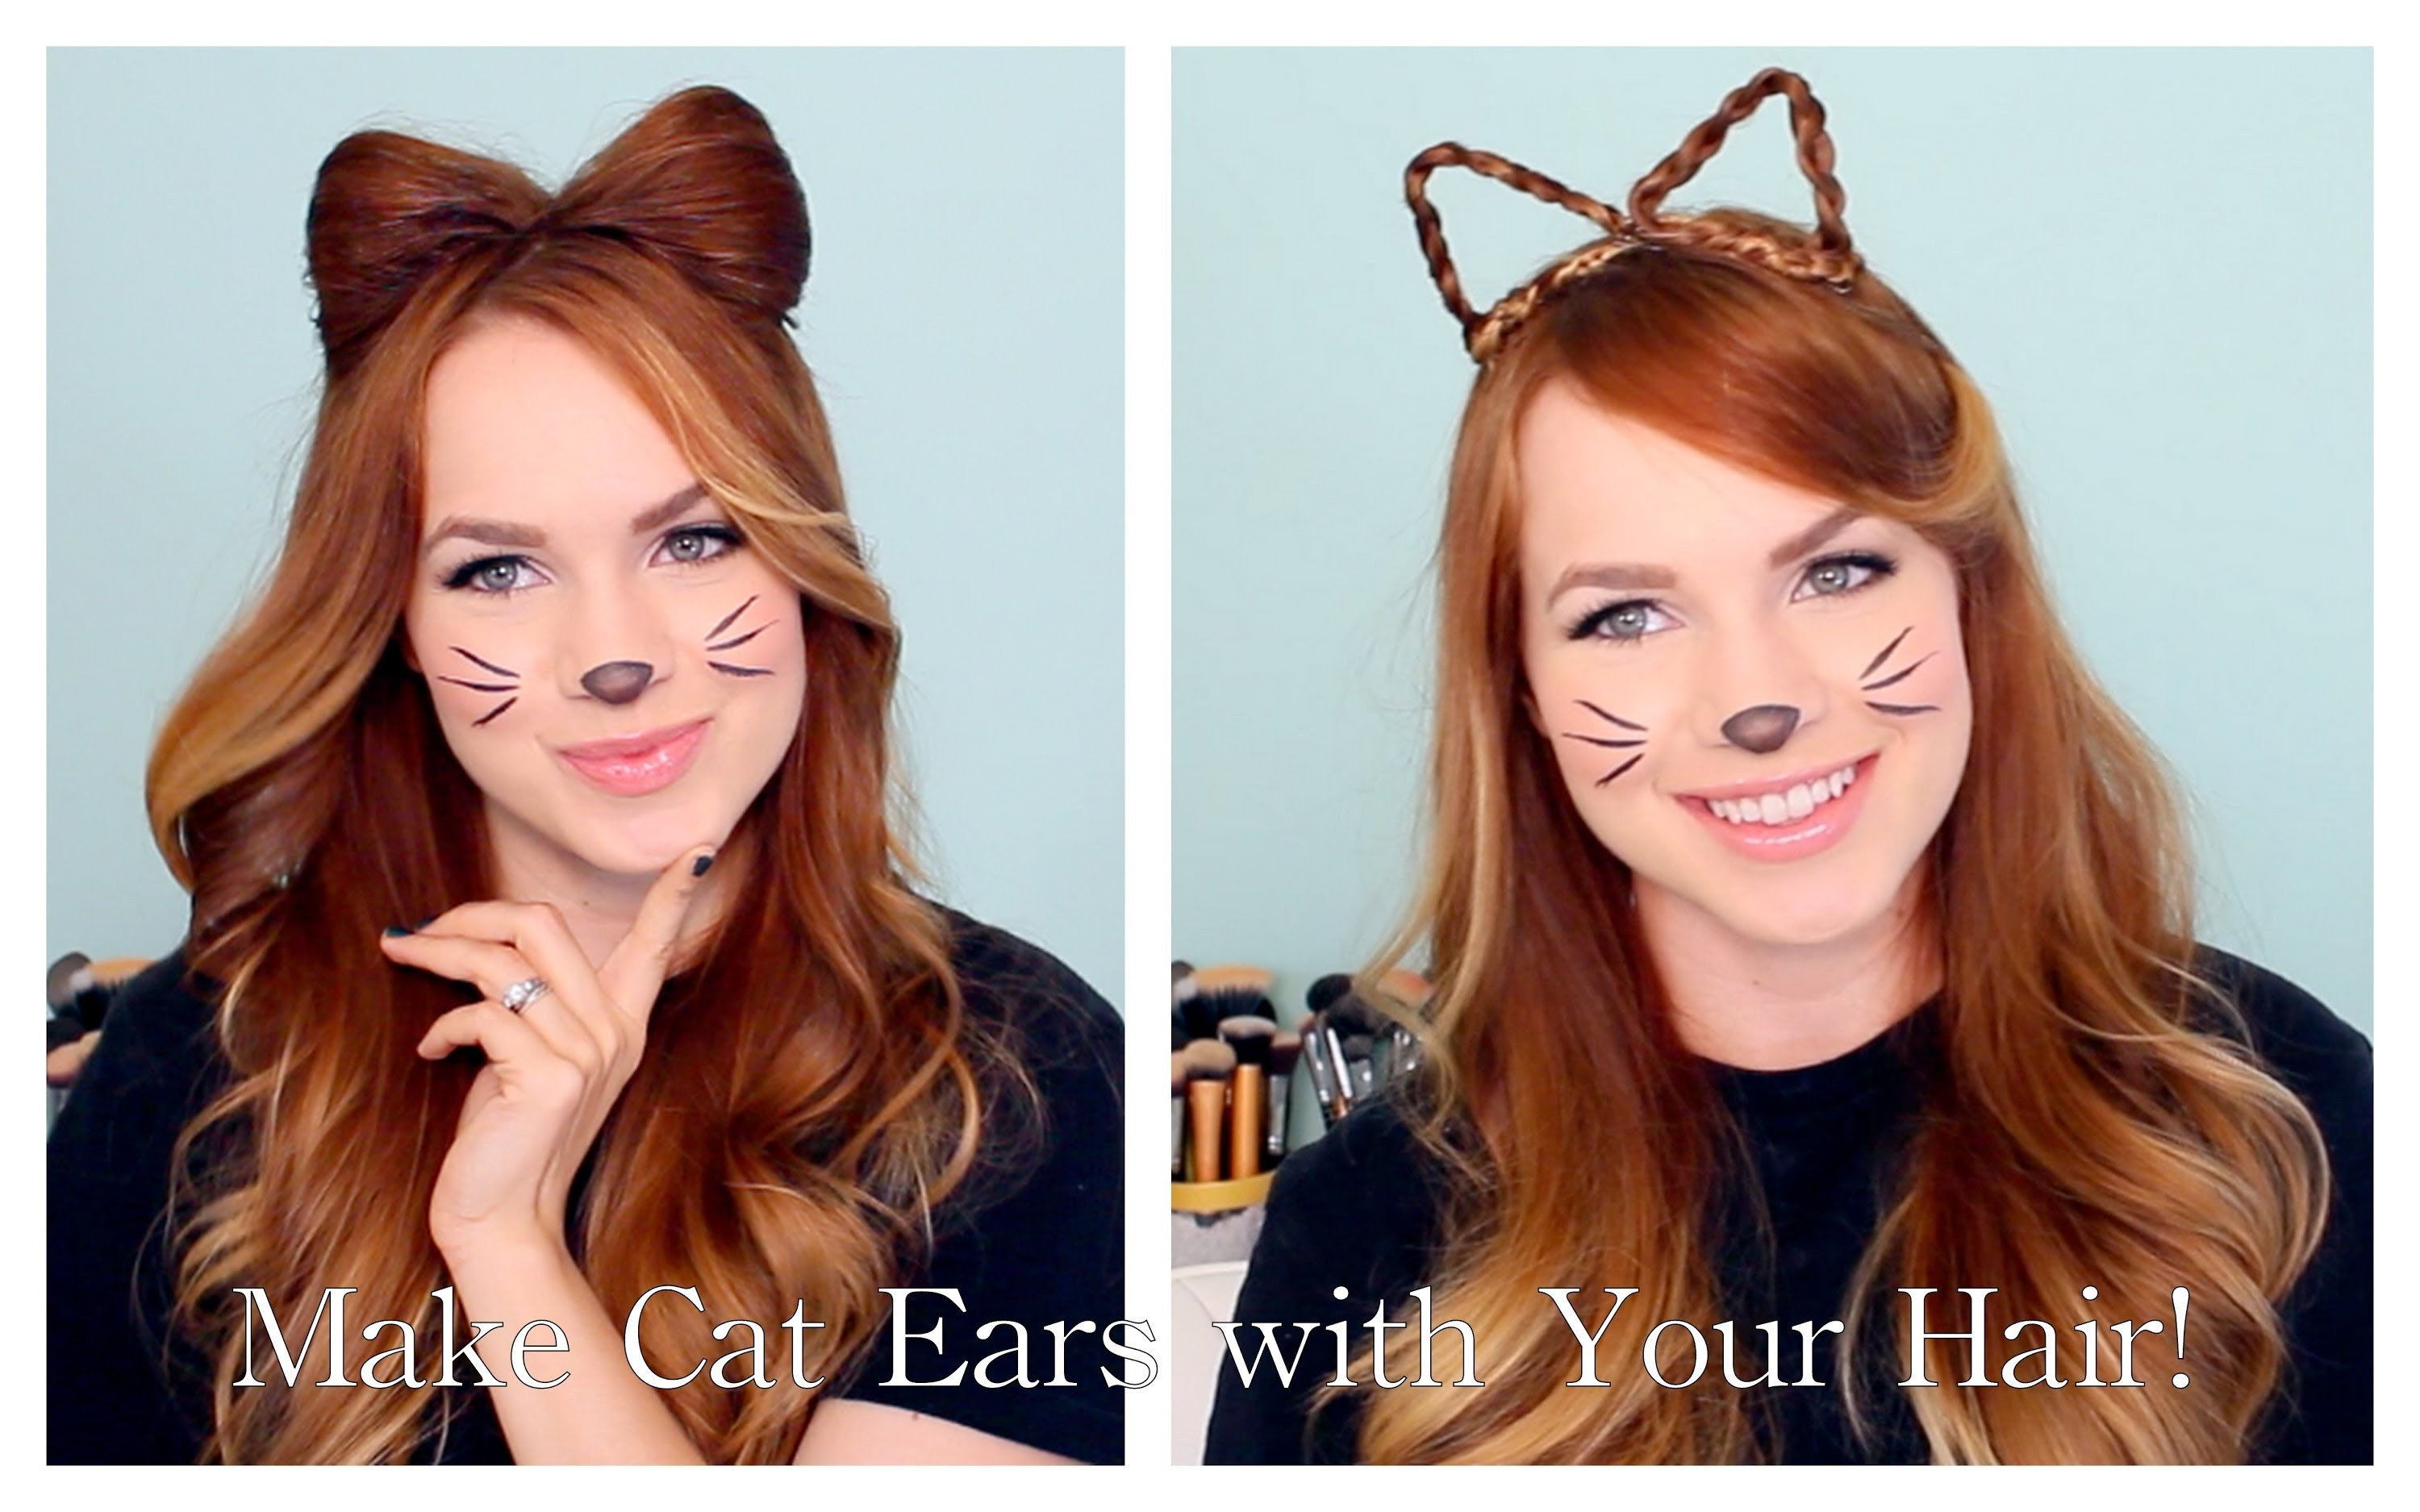 2 Ways to Make Cat Ears with Your Hair!